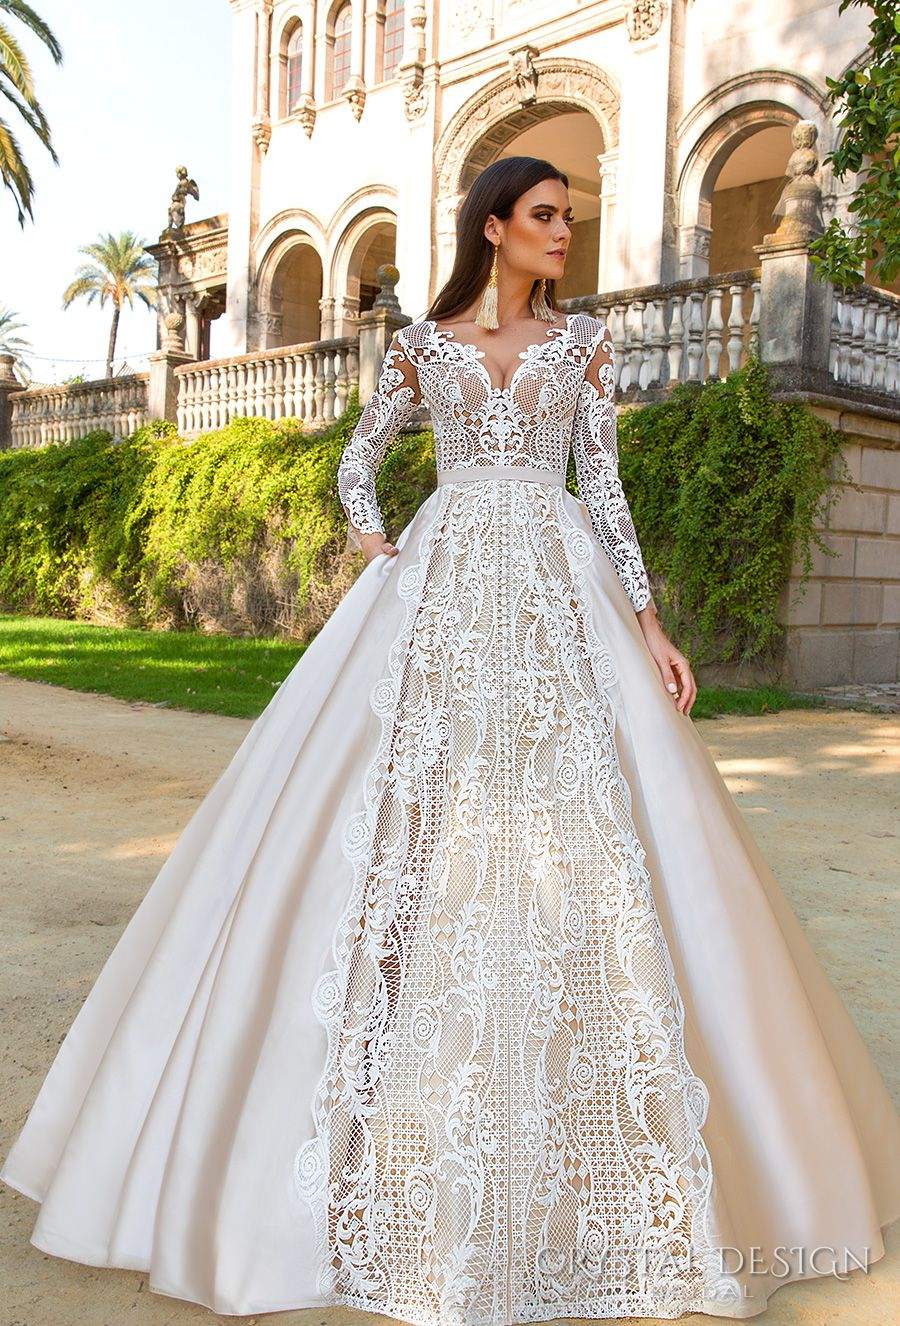 Crystal Design 2017 Bridal Long Sleeves Sweetheart Neckline Full Embellishment Lace Glamorous A Line Wedding Dress Sheer Back Royal Train Ohara Mv